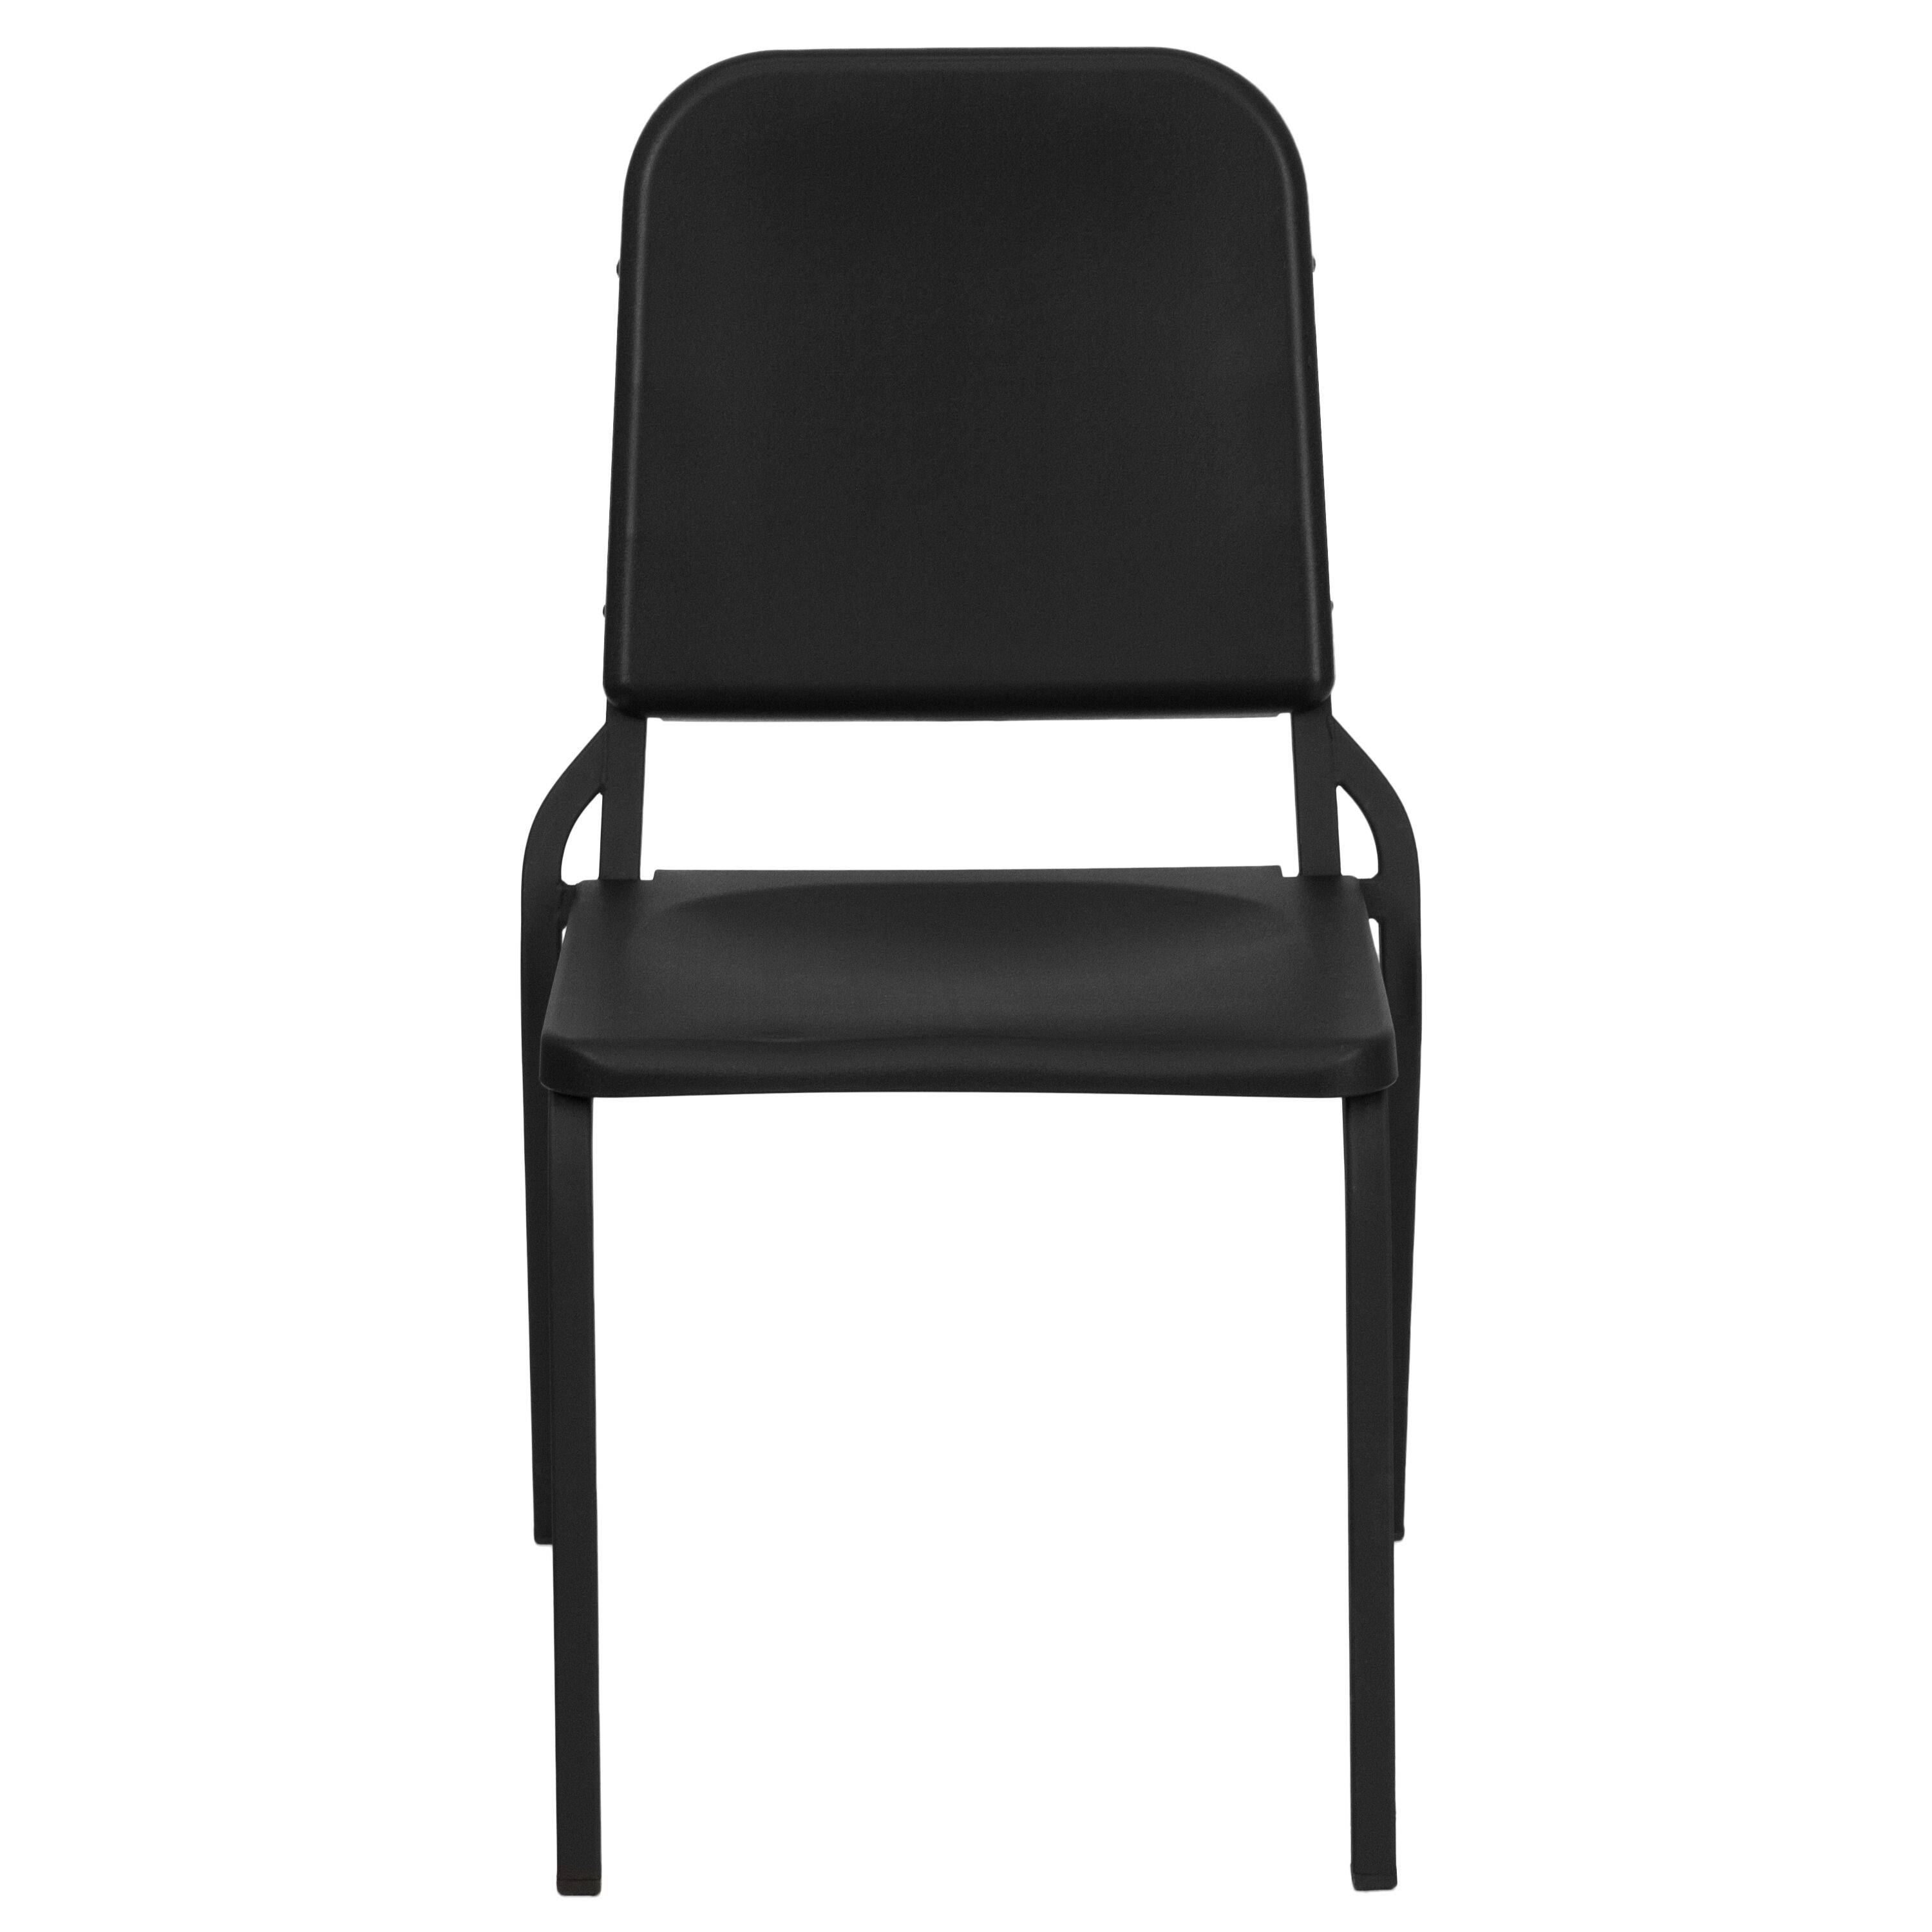 stackable chairs for less ikea oak black melody band music chair hf gg